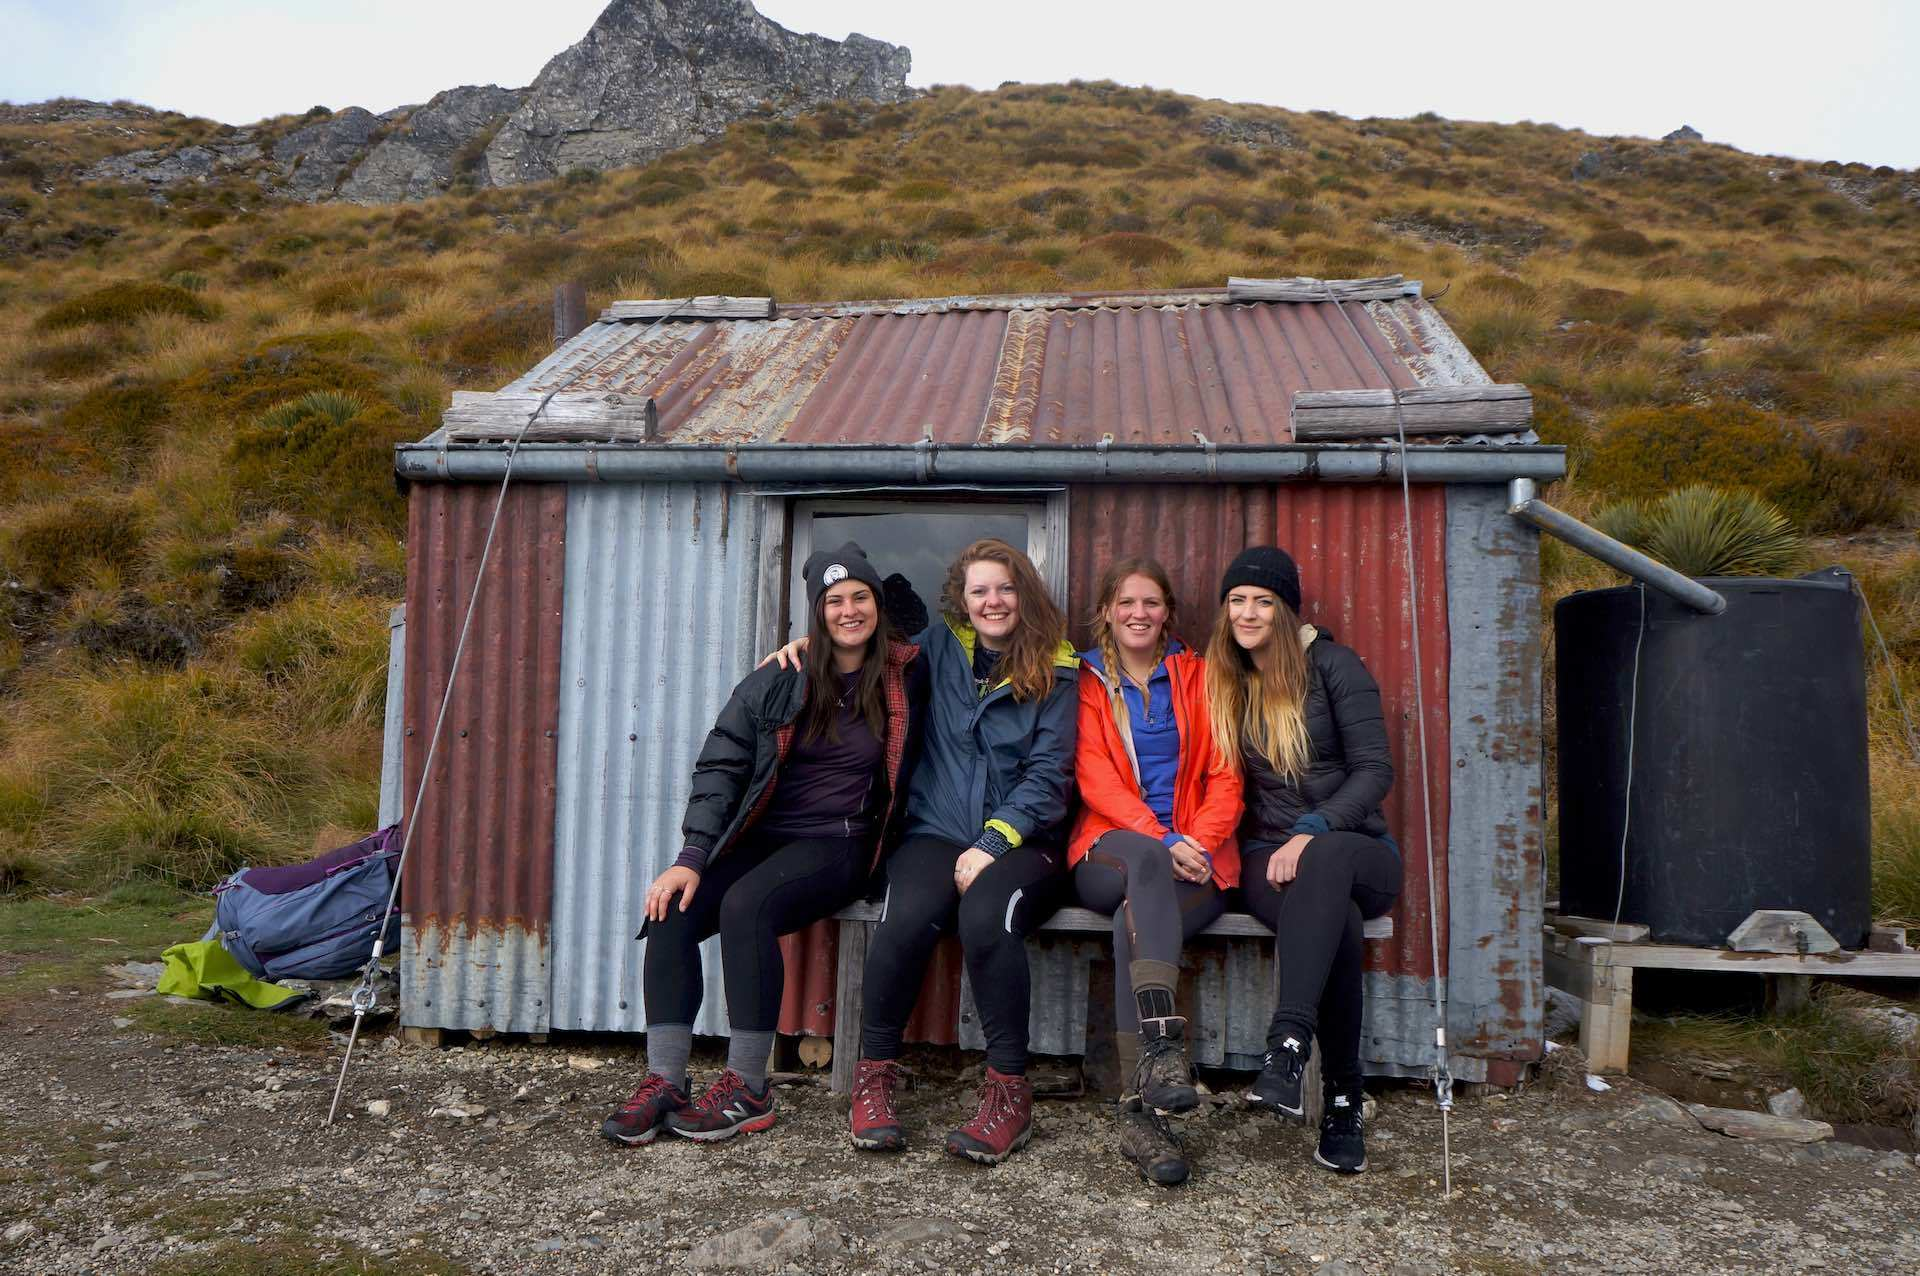 Hike to Heather Jock Hut For Jaw Dropping Mountain Views, Arden Haar, NZ, hut, friends, women, sit, mountain